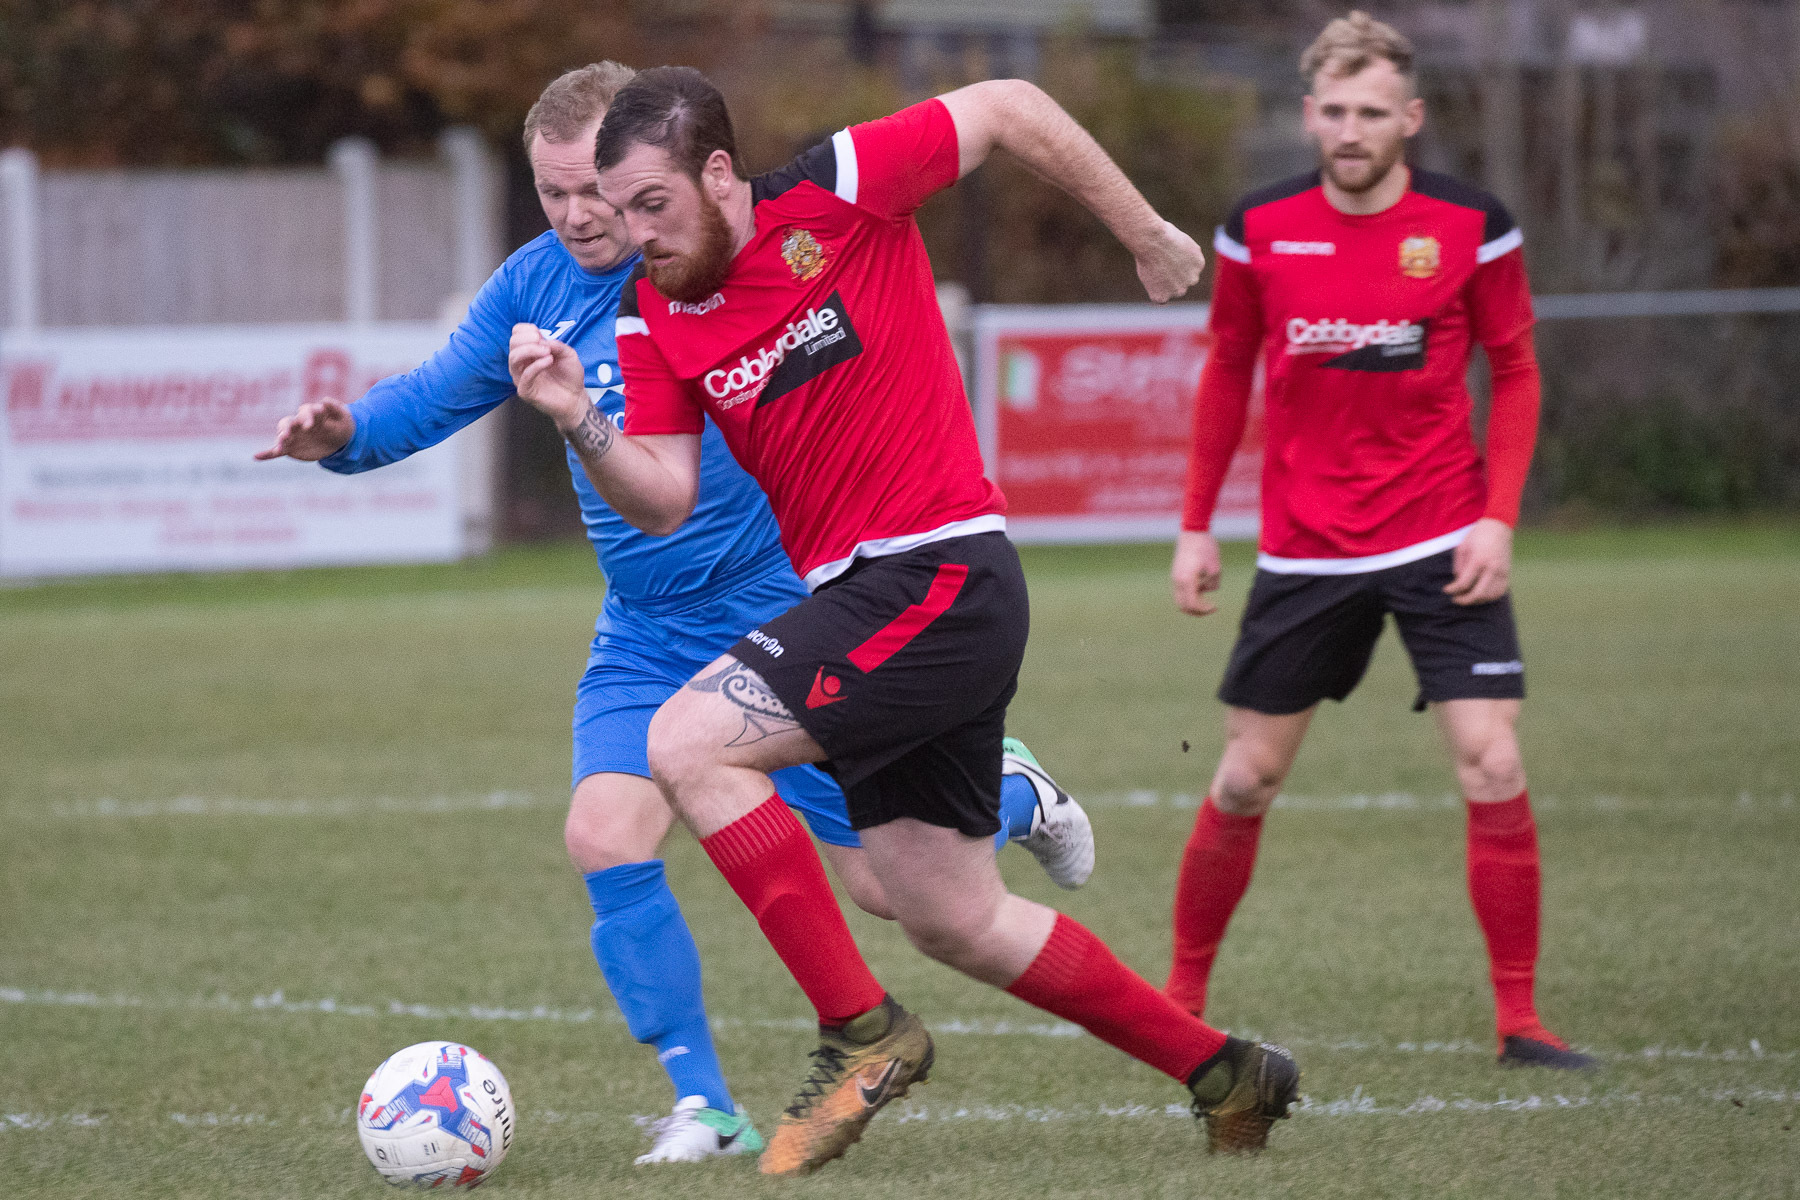 Silsden's Reece Lyndon scored a late consolation goal against Irlam, but it meant little on a terrible afternoon for his side Picture: David Brett